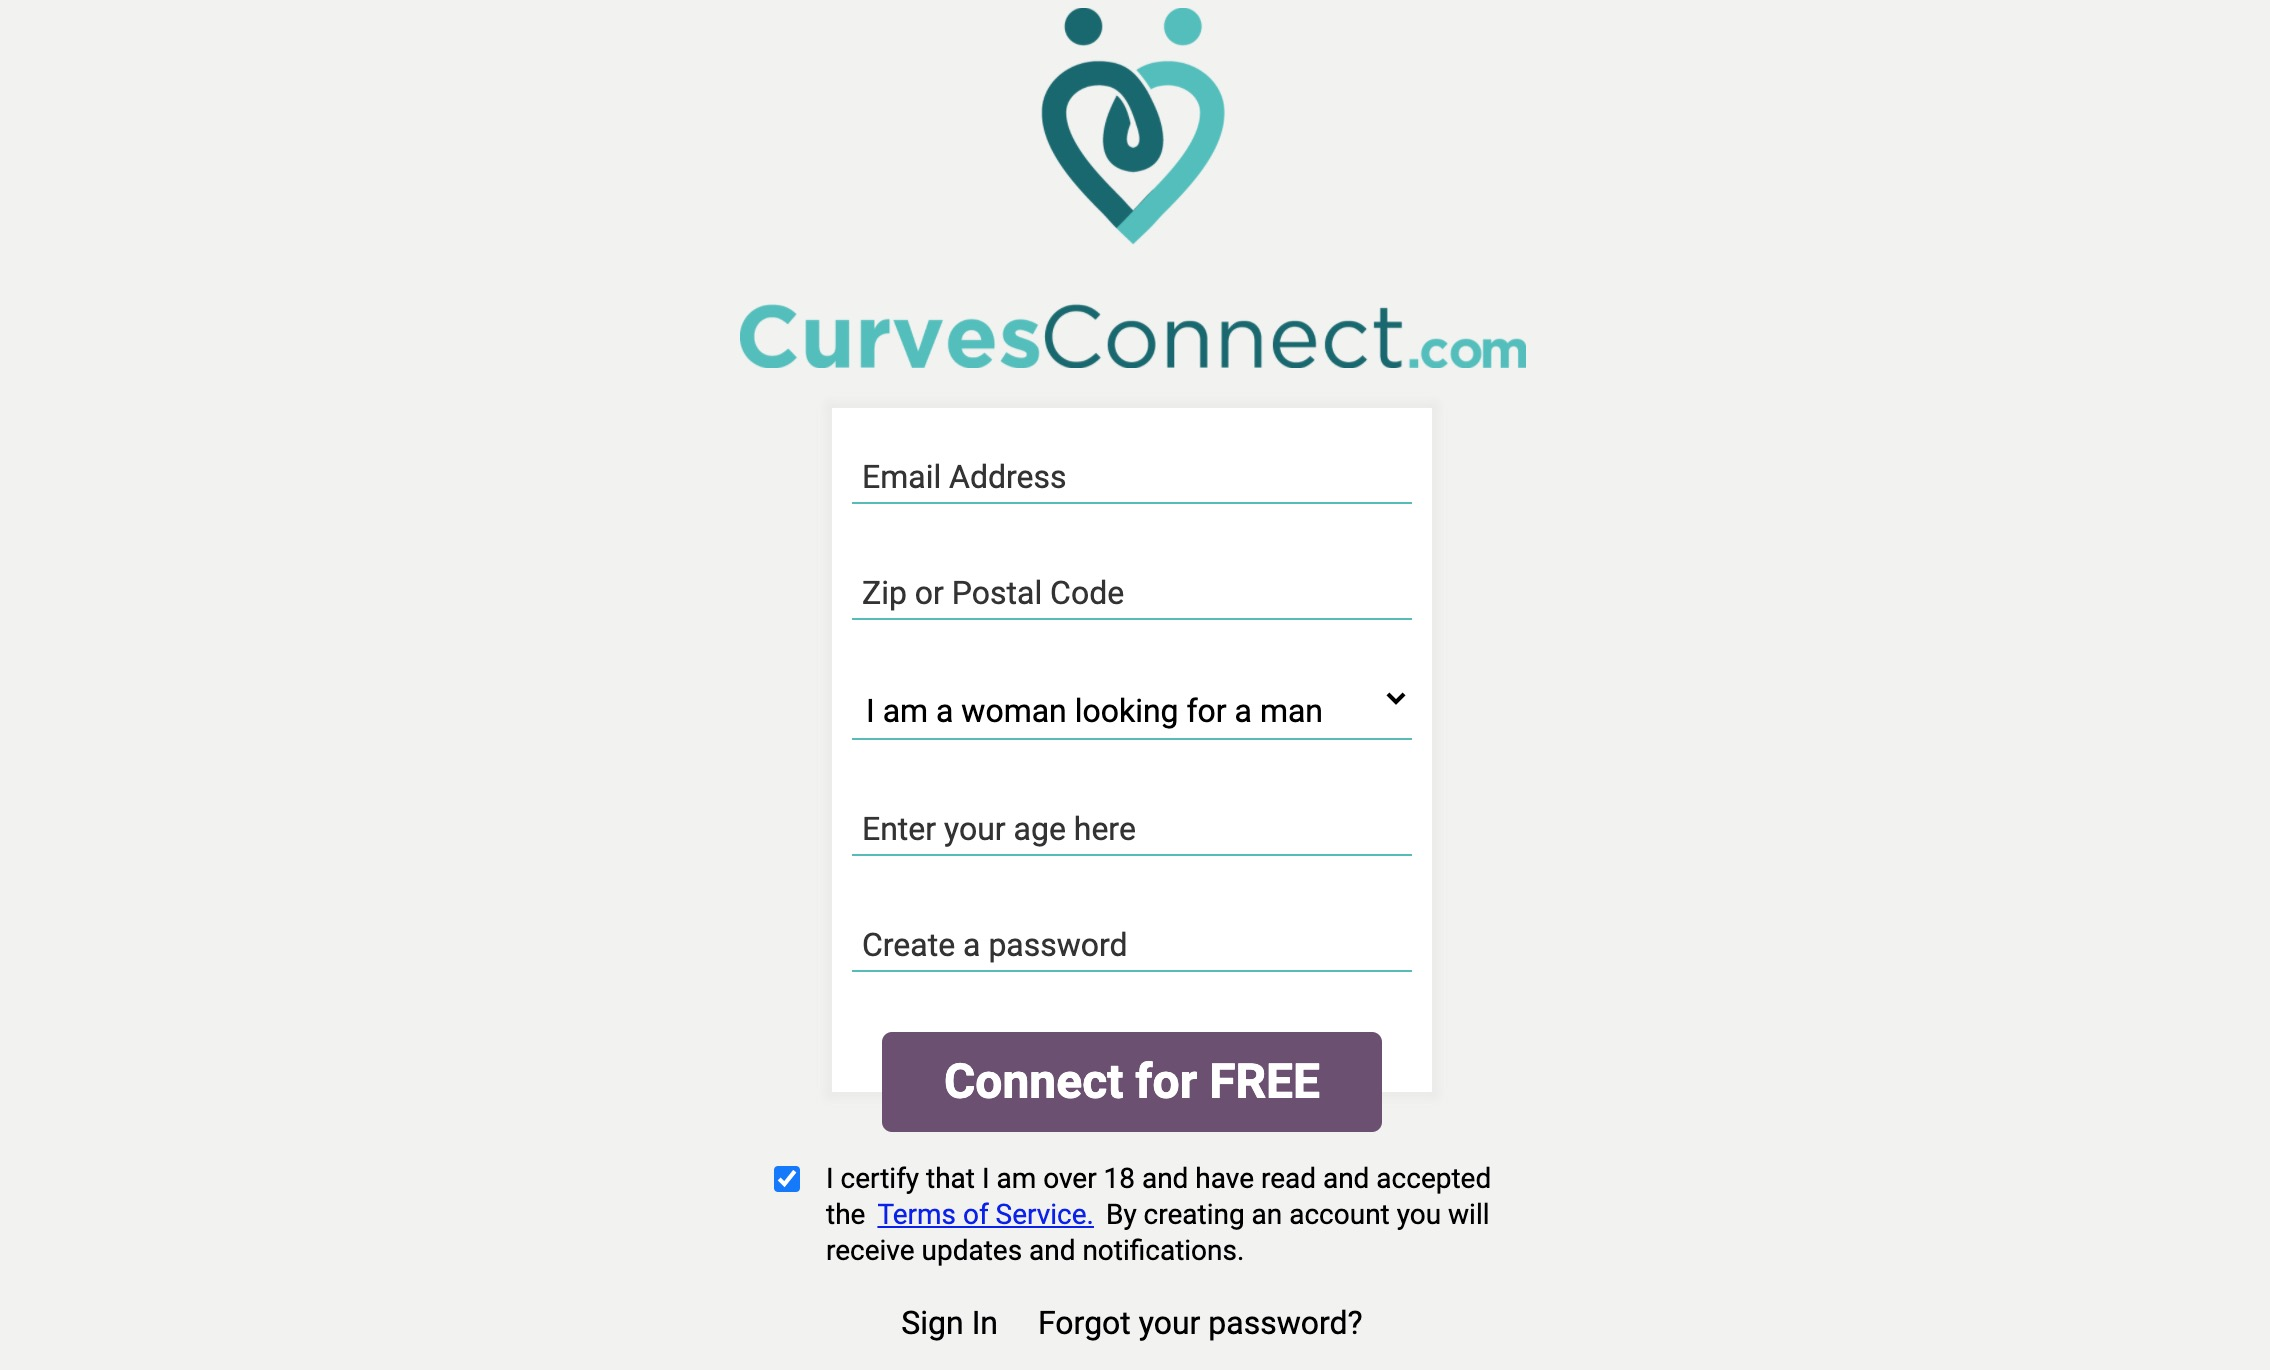 CurvesConnect main page